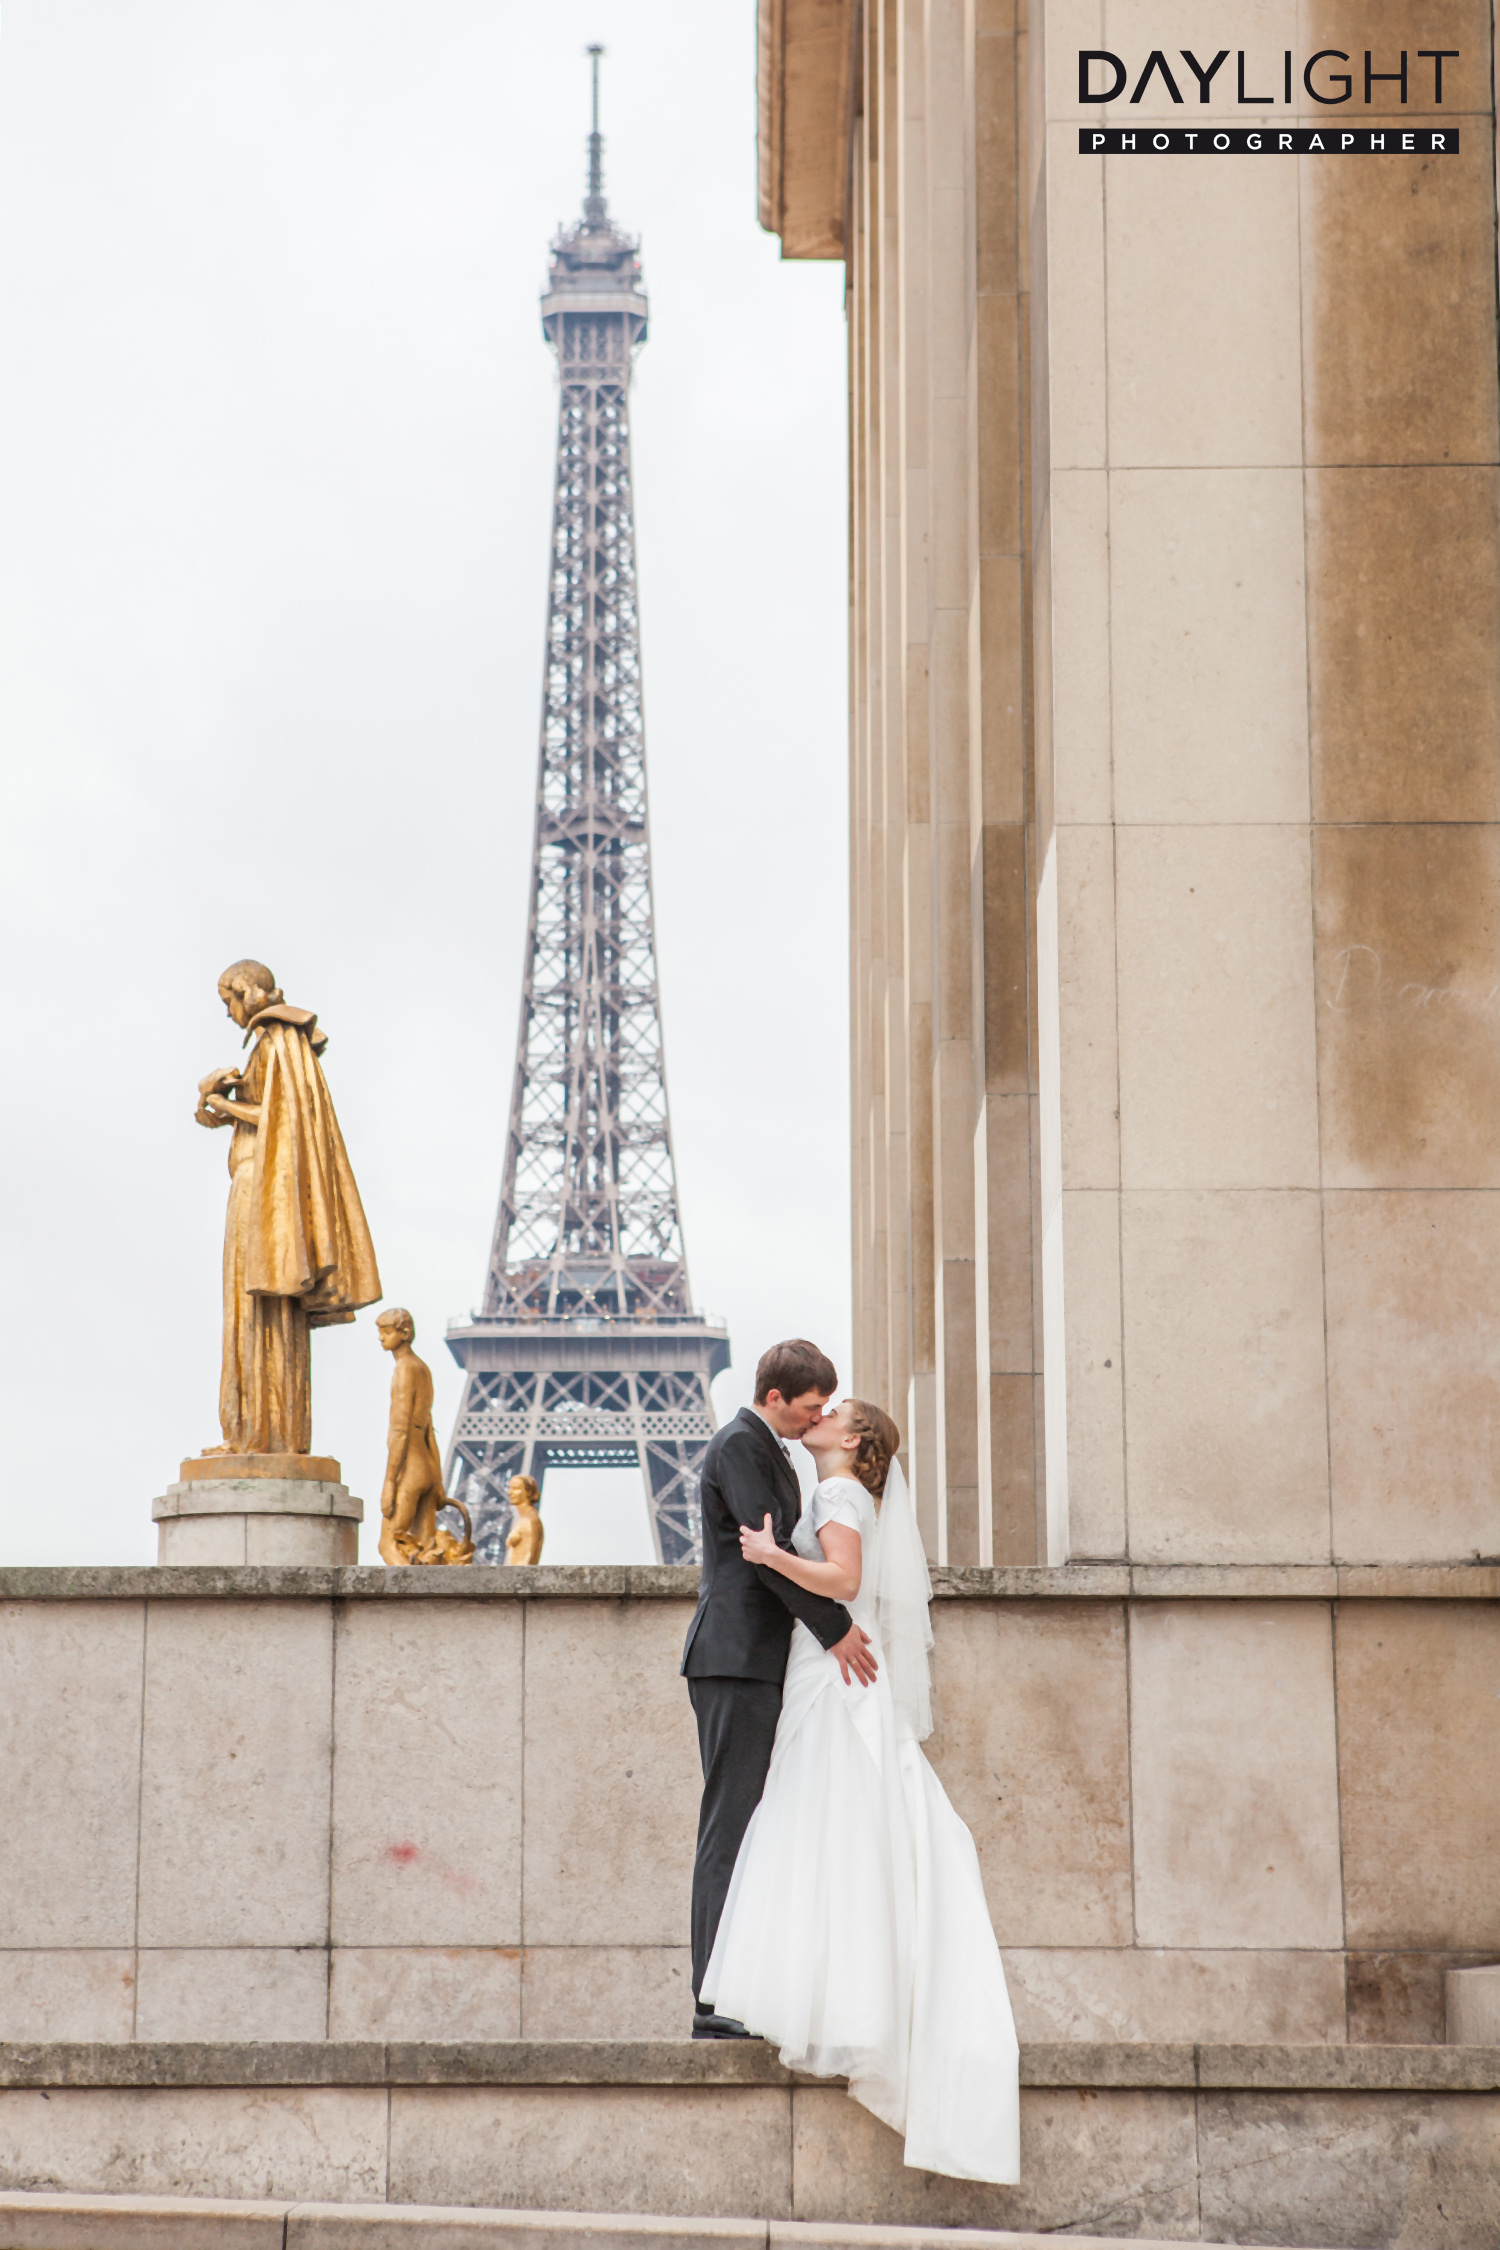 Wedding pictures at the Eiffel Tower